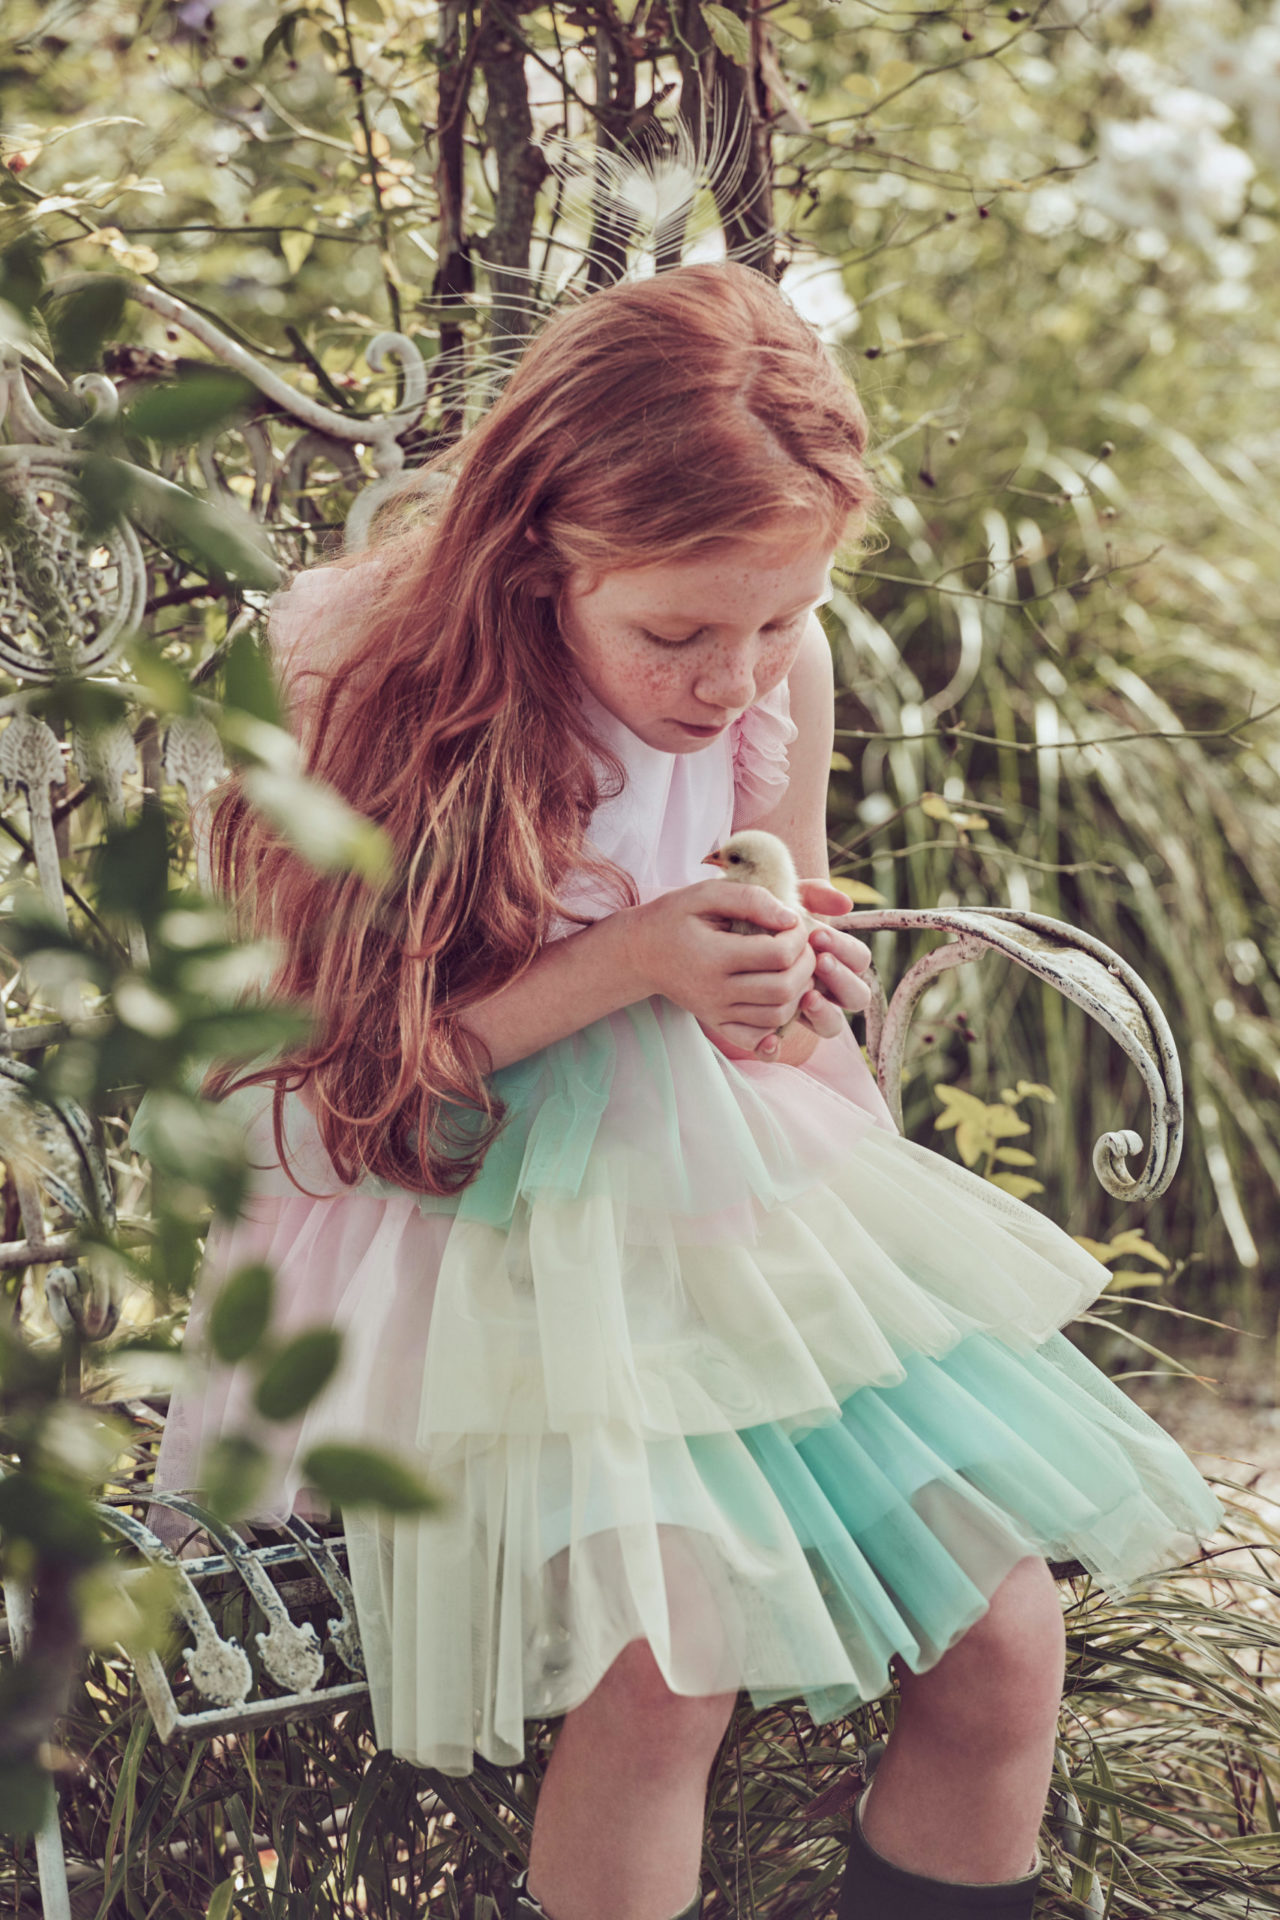 This summers fashion trend for tulle in a beautiful girls dress by Il Gufo